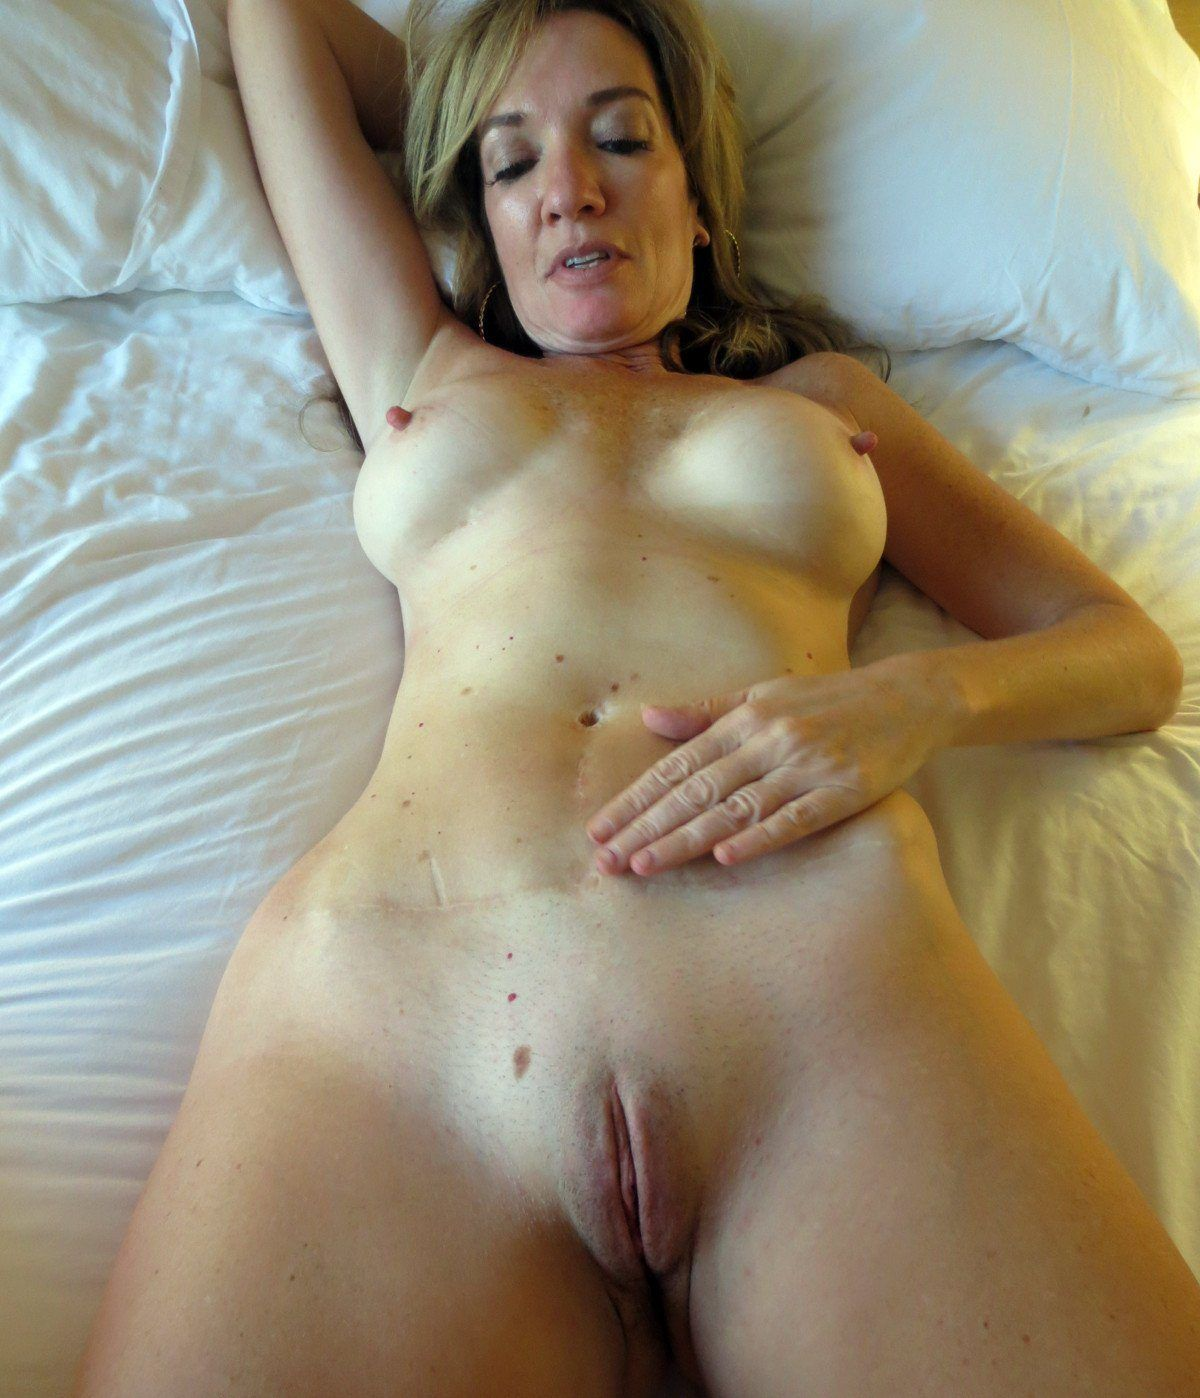 Very pity hot naked wife compilation rather